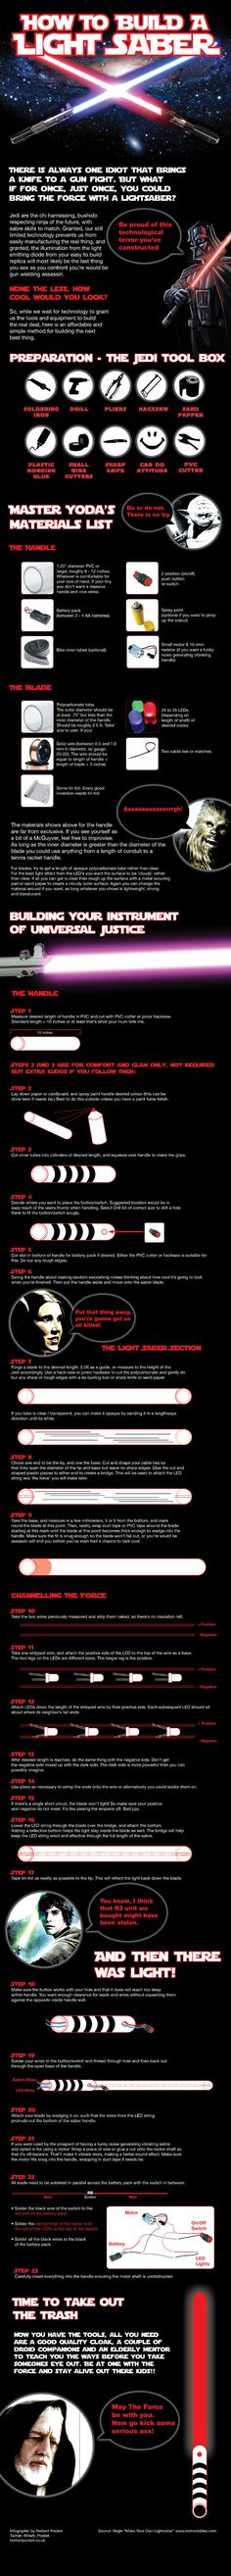 How to Make A Star Wars LightSaber #infographic